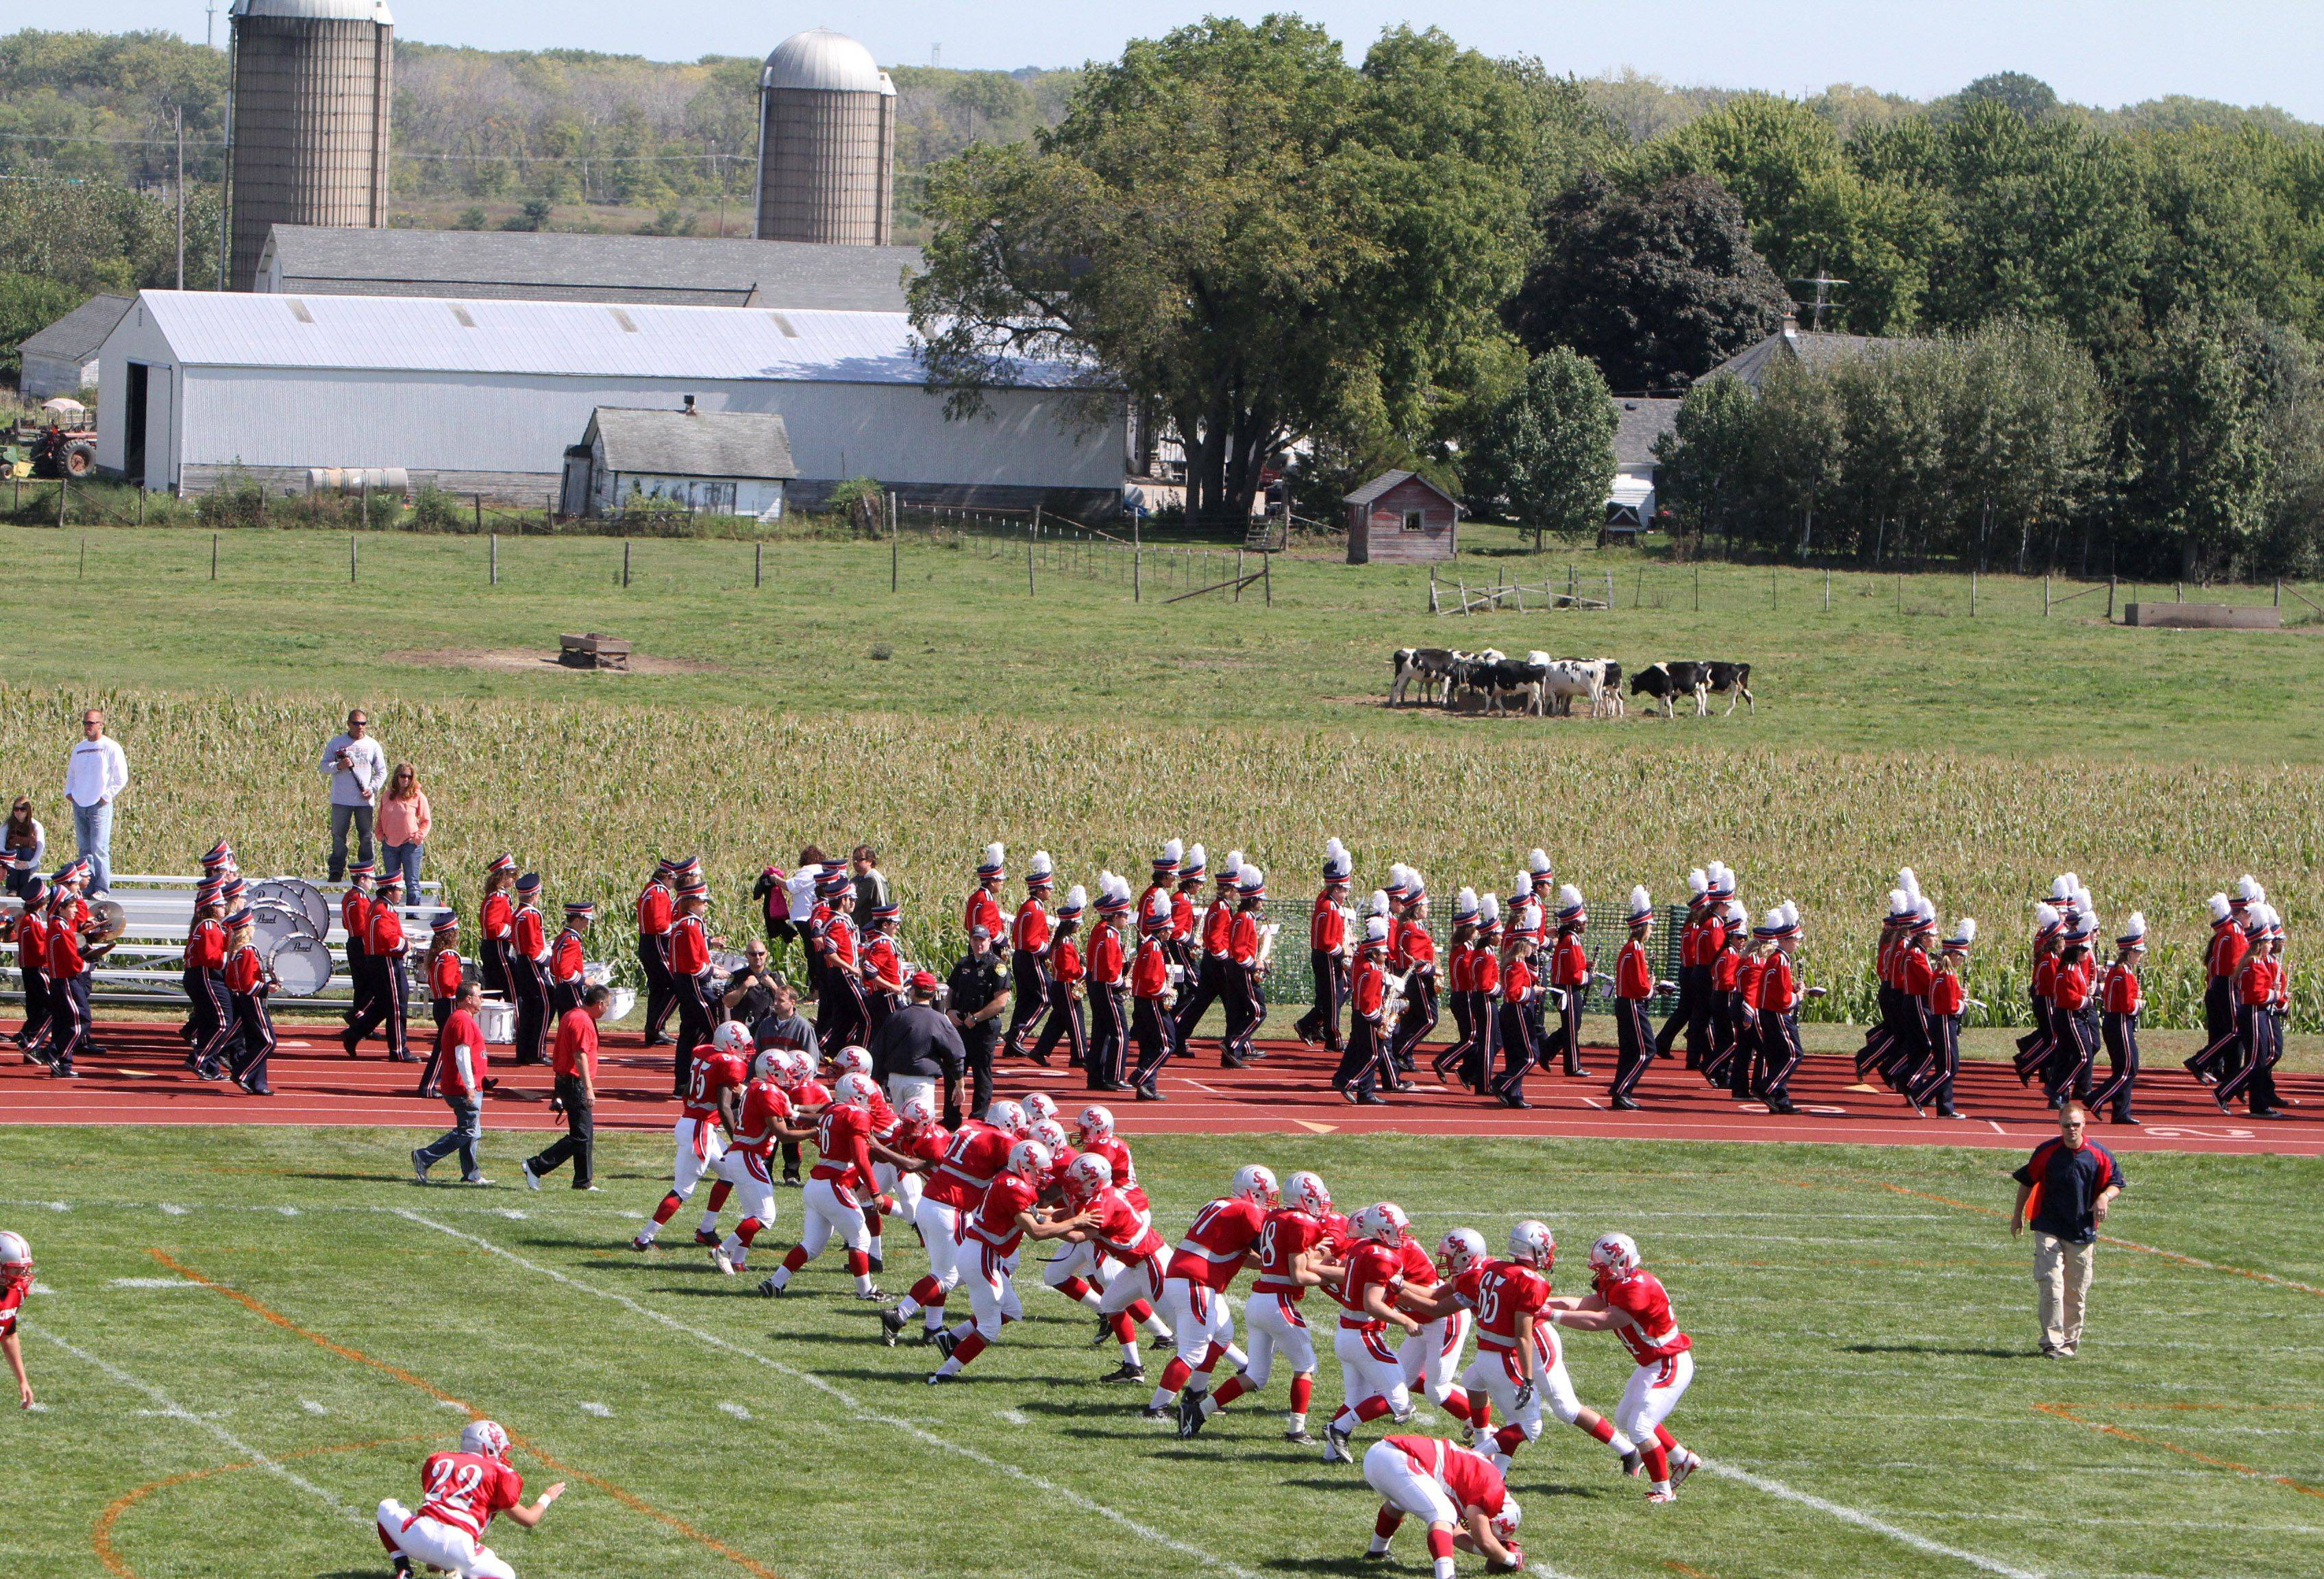 South Elgin's varsity football team and marching band prepare to play Metea Valley at the new South Elgin Booster Stadium Saturday.